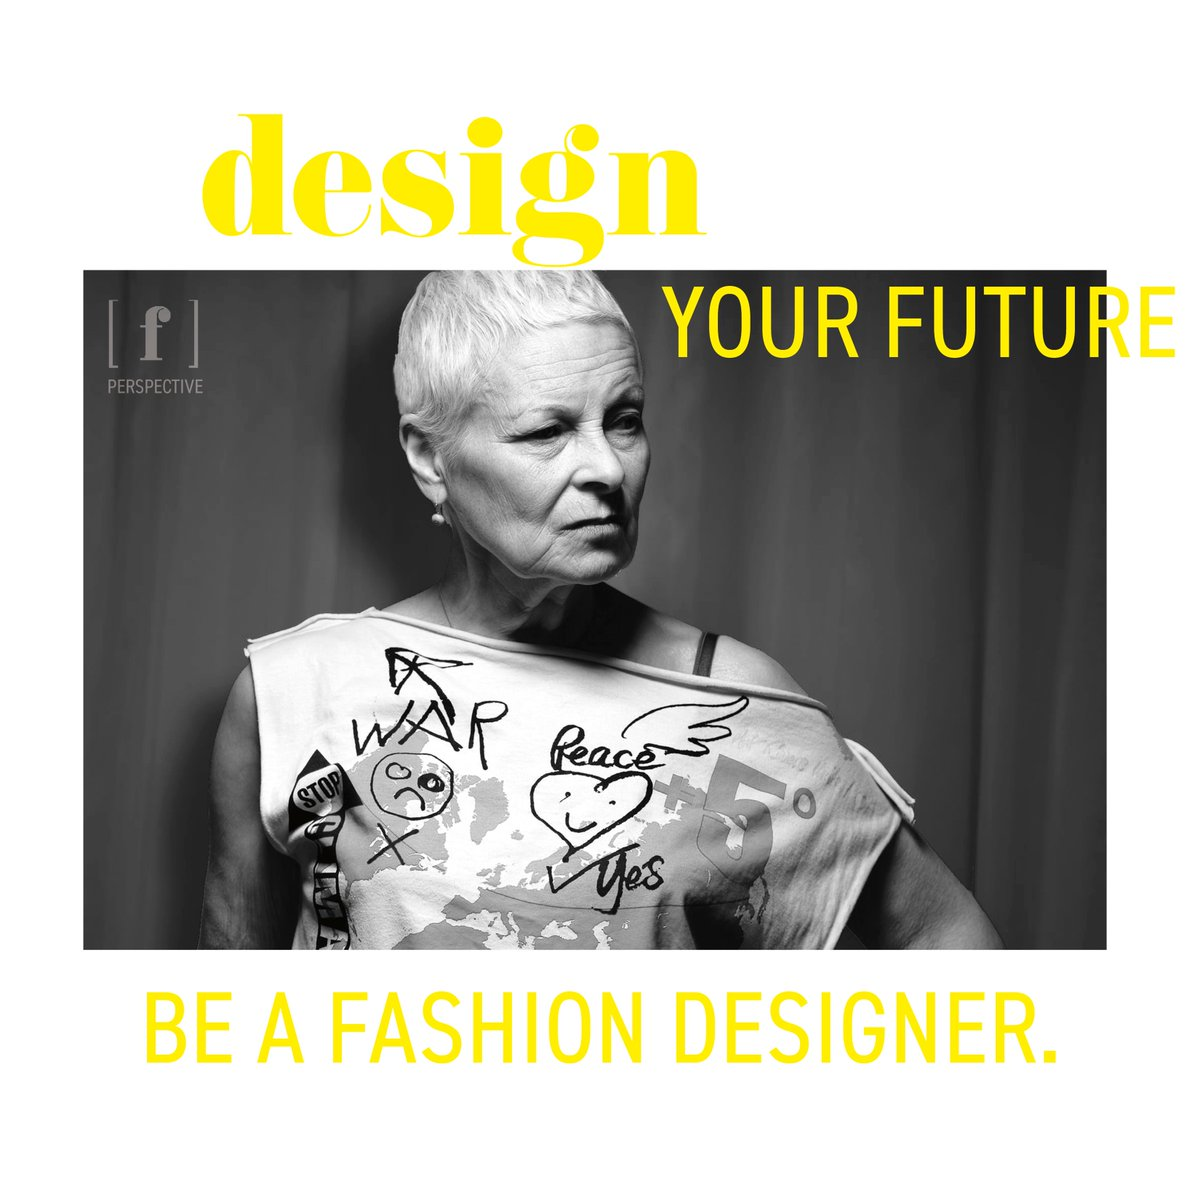 Frontroom Creative Agency On Twitter Vivienne Westwood Most Well Known For Being A British Fashion Designer And Businesswoman Largely Responsible For Bringing Modern Punk And New Wave Fashions Into The Mainstream In